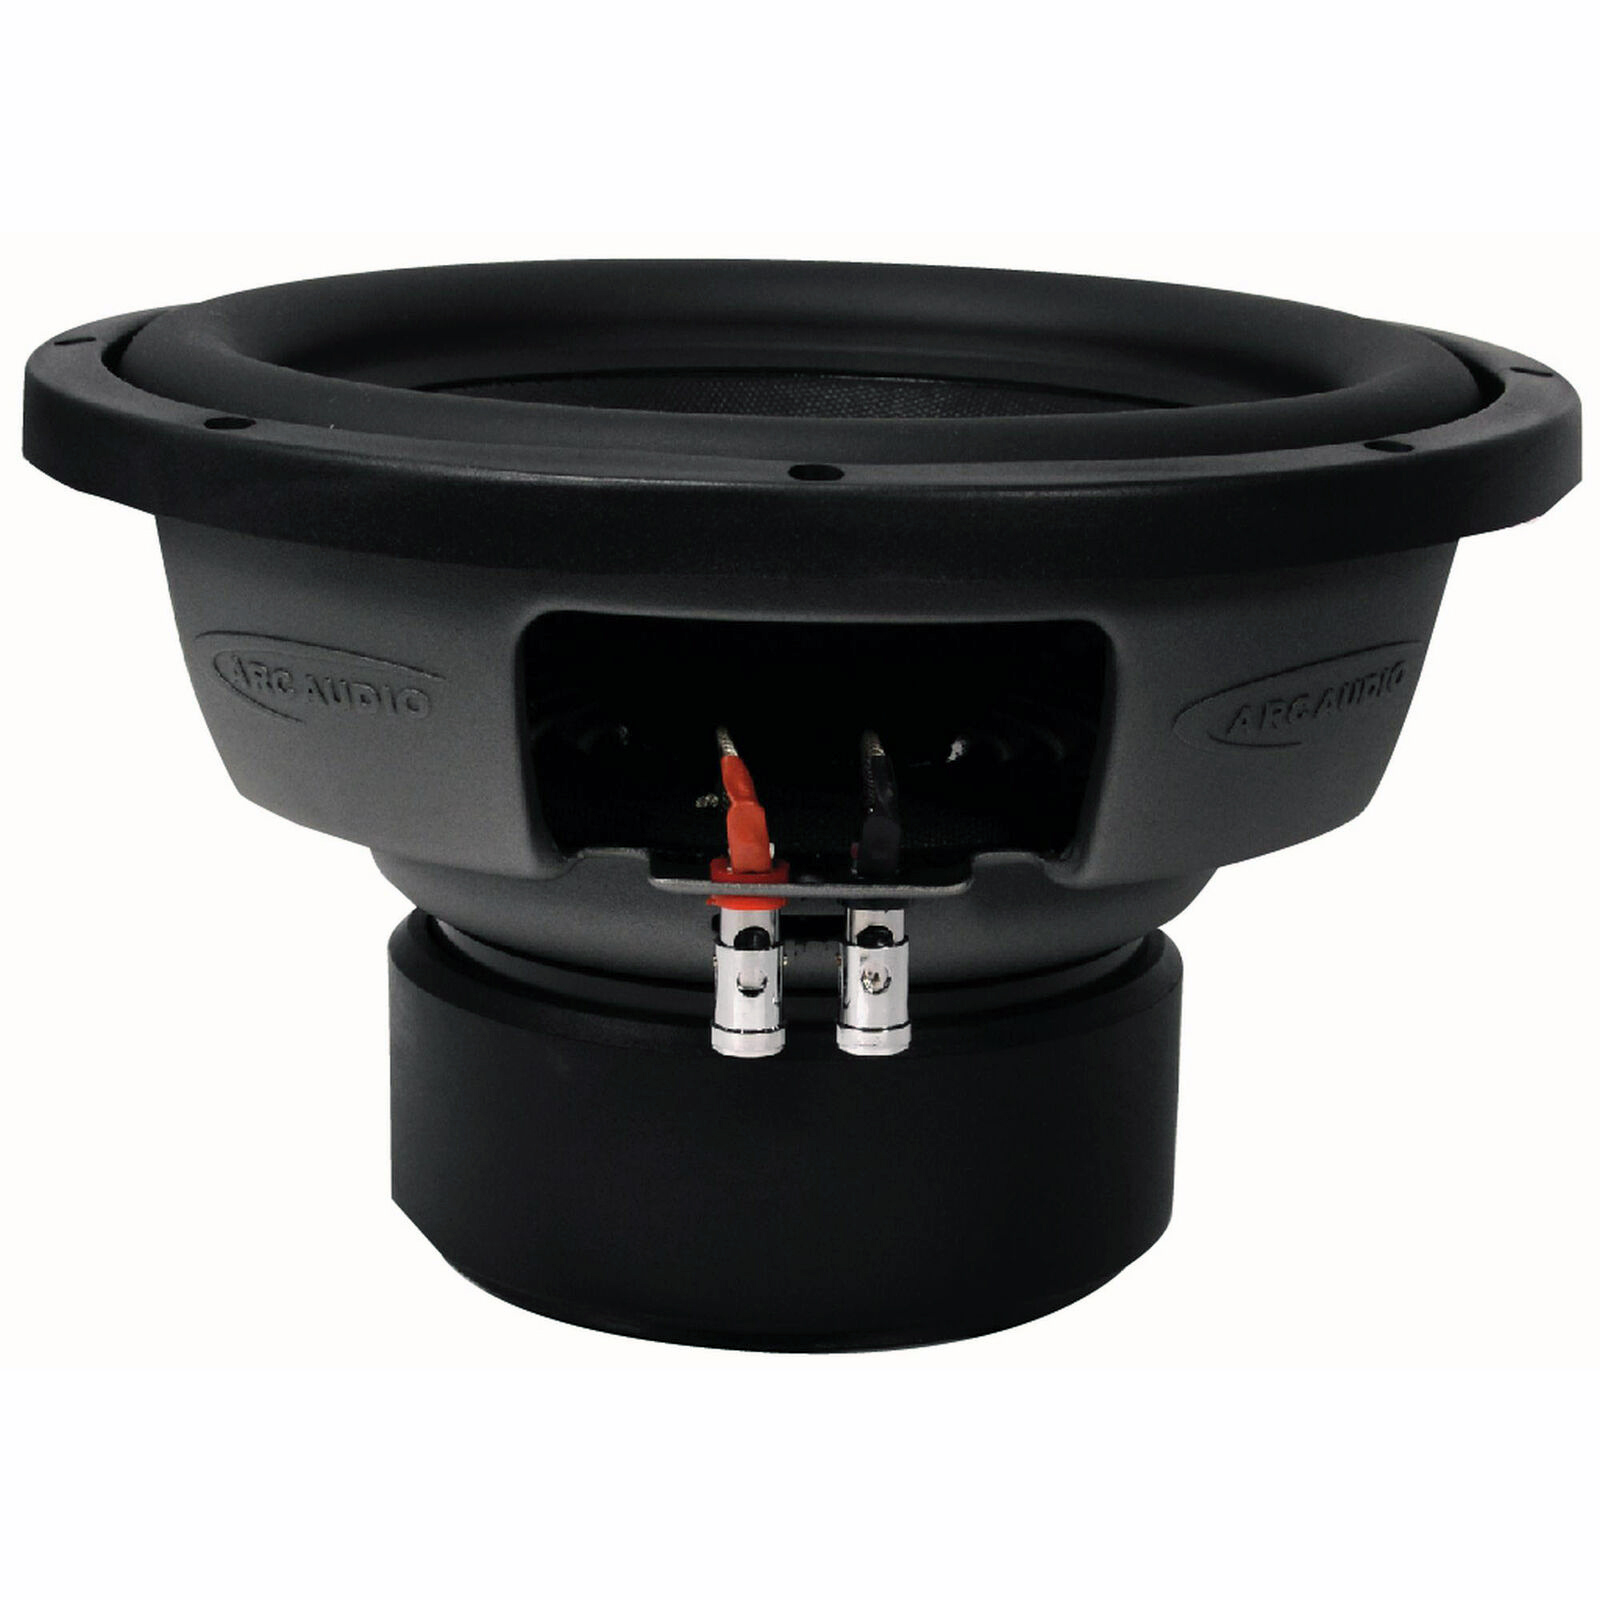 arc audio x2 10 inch subwoofer pasmag 03